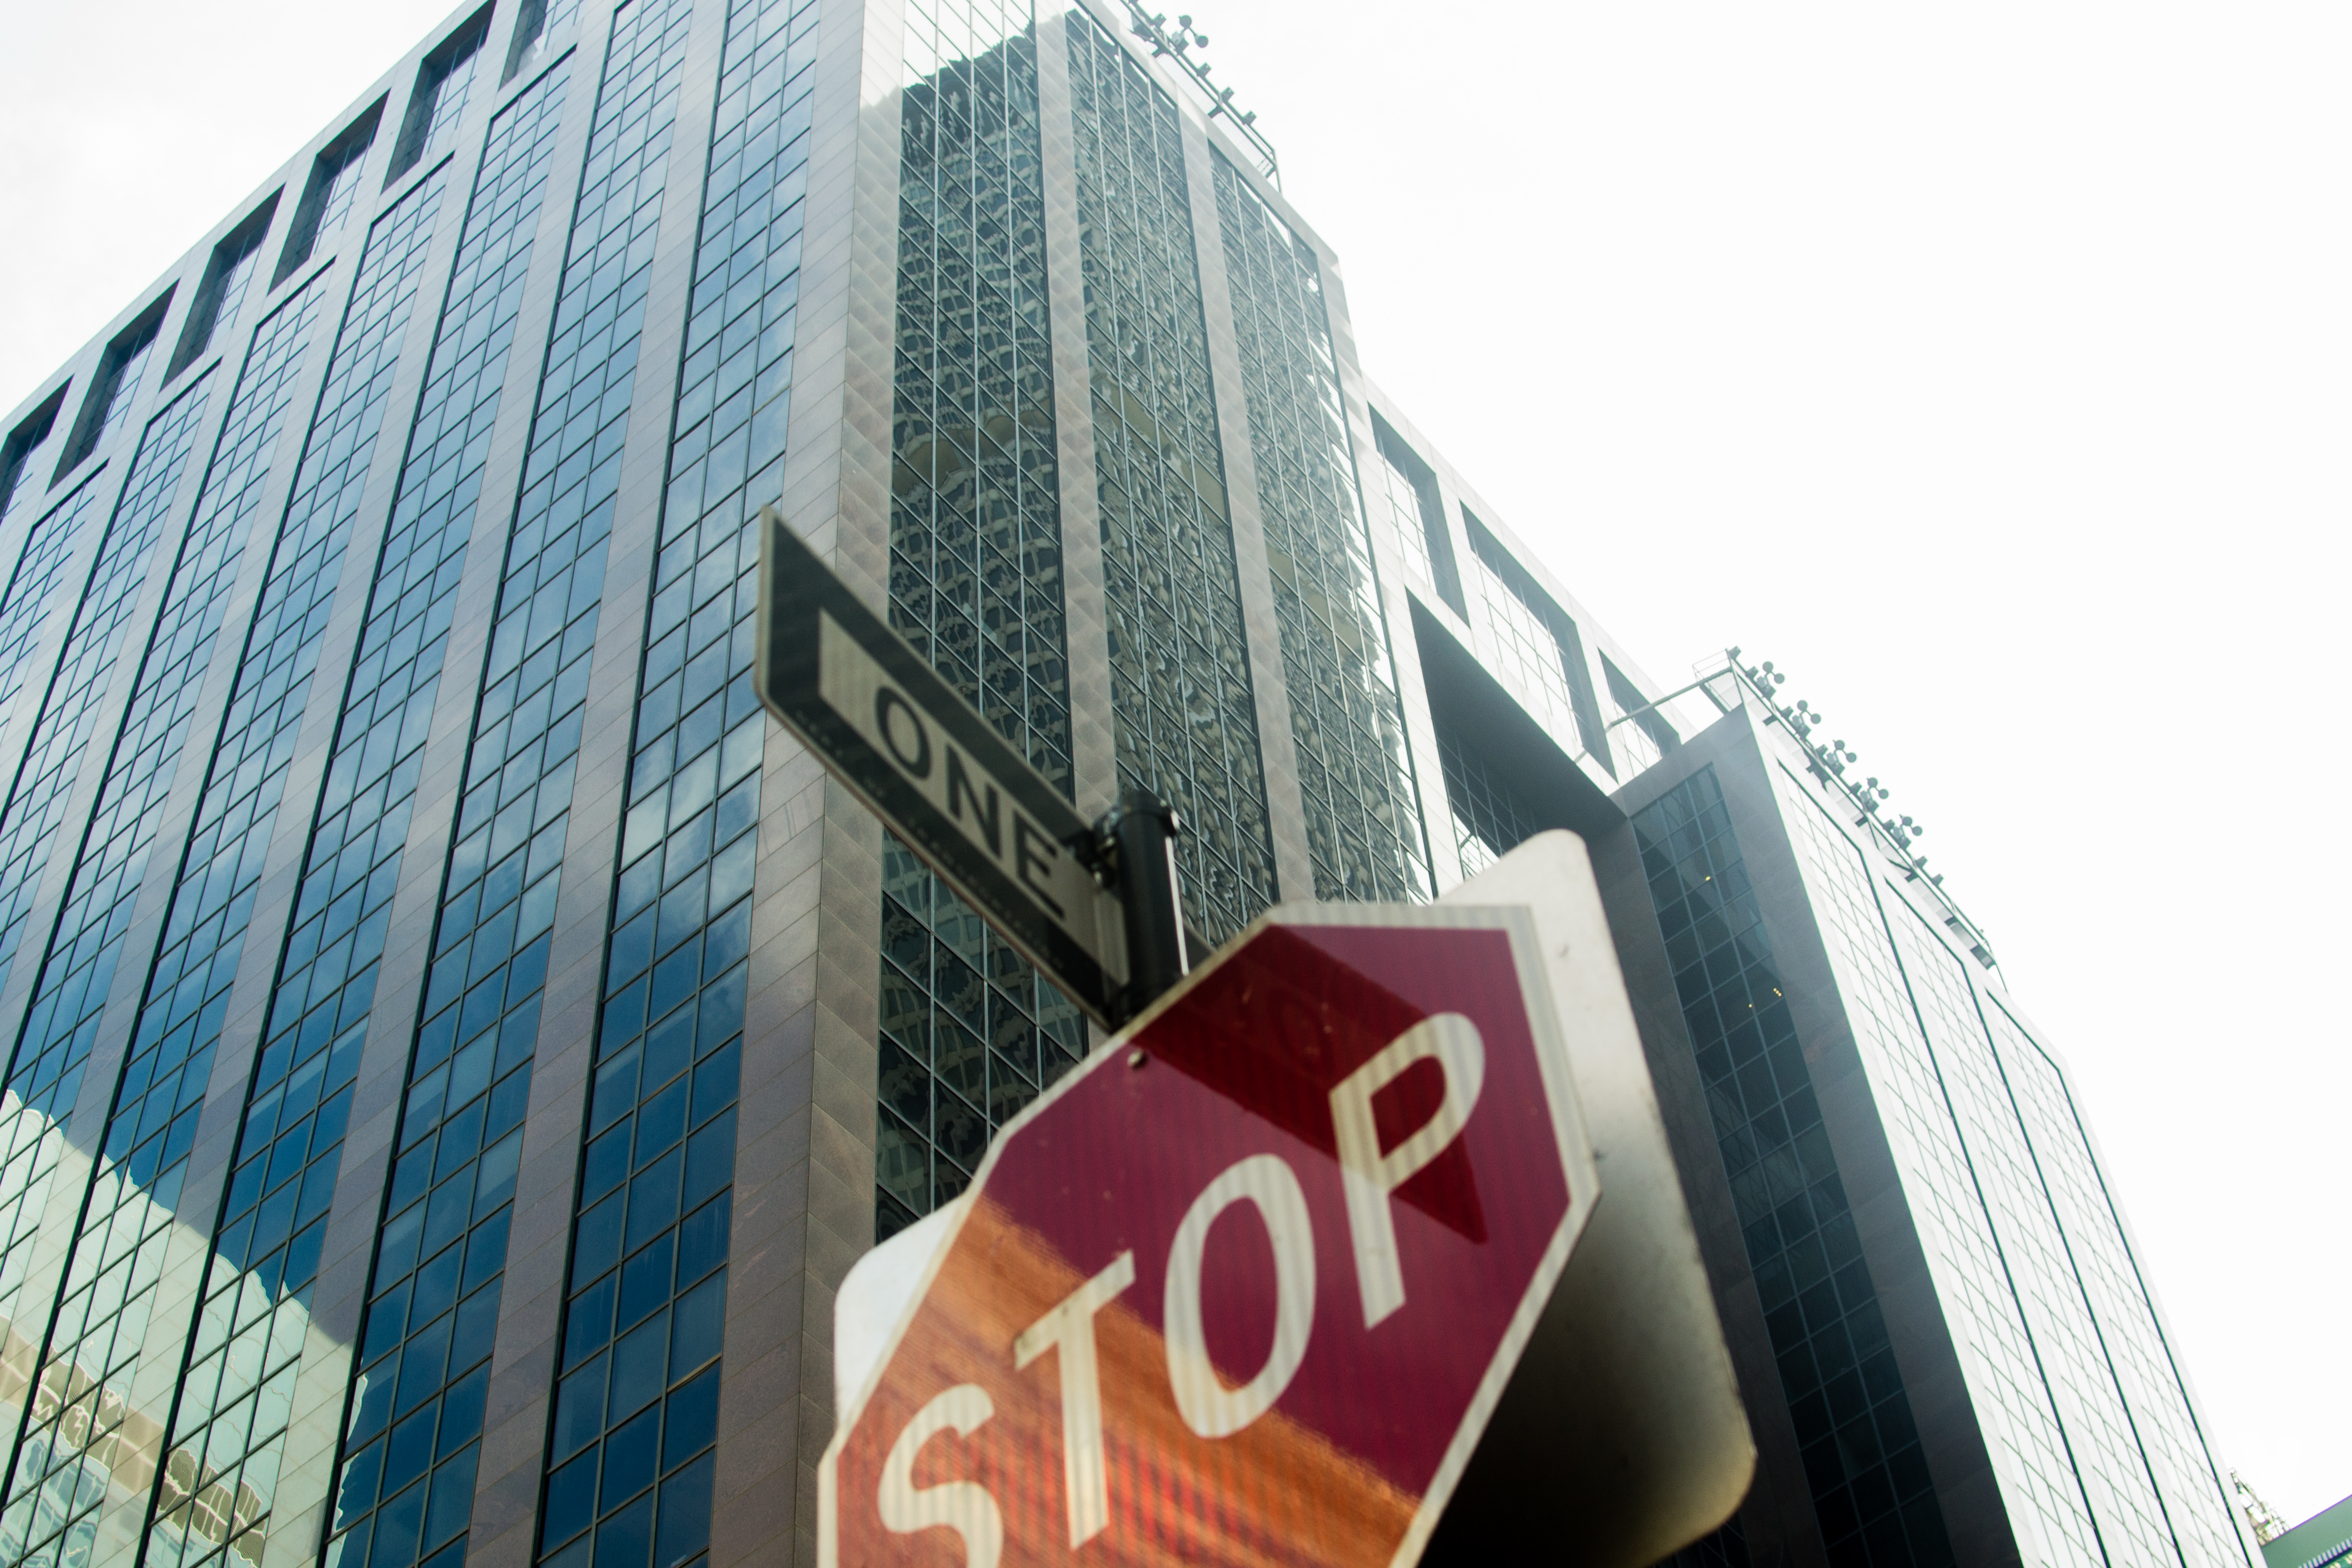 Perspective of a person looking up at a stop sign with skyscrapers in the background